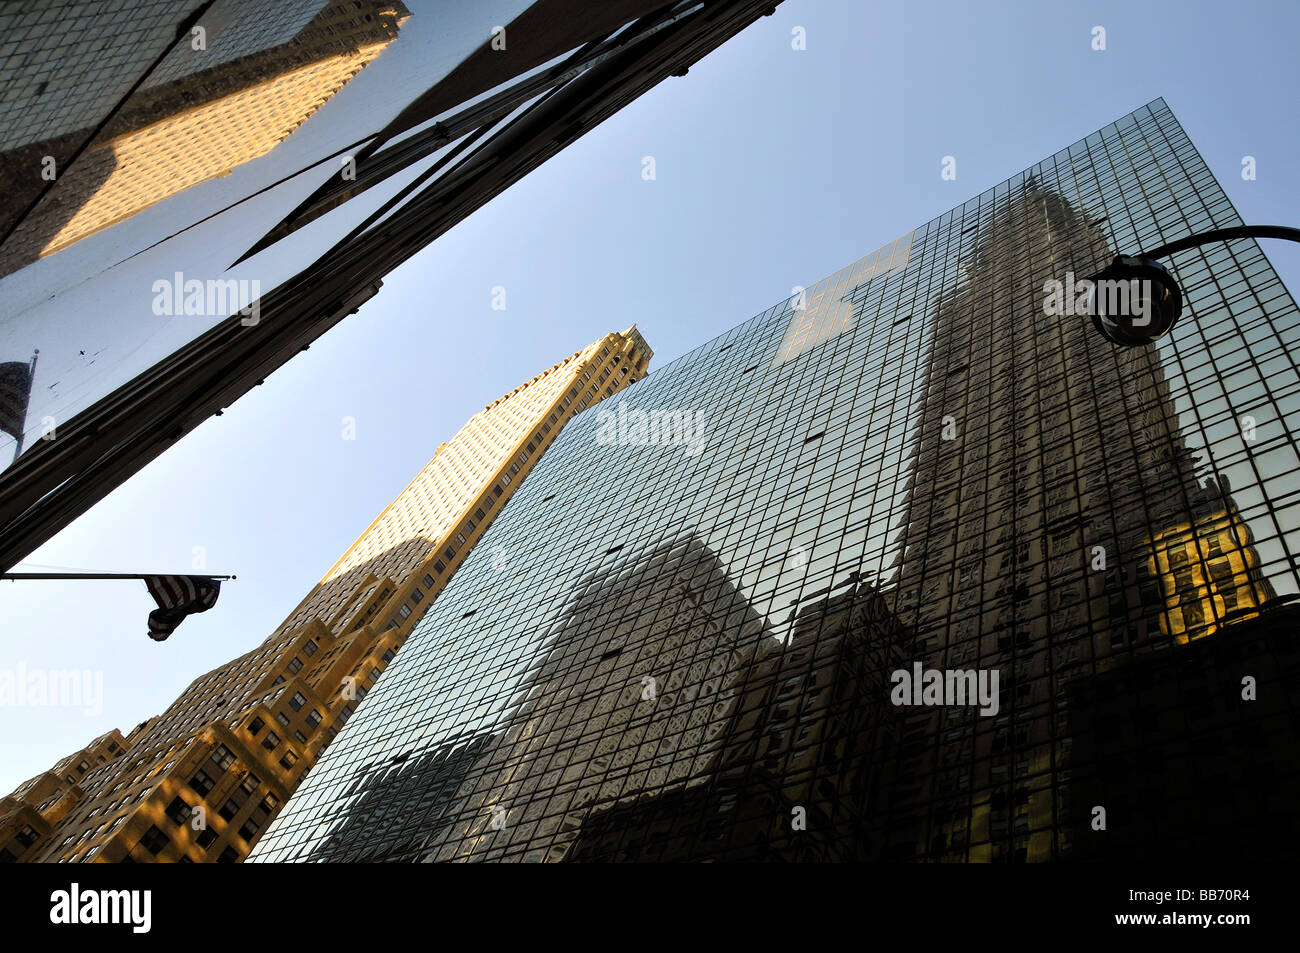 Group of skyscrapers- low angle view - Stock Image